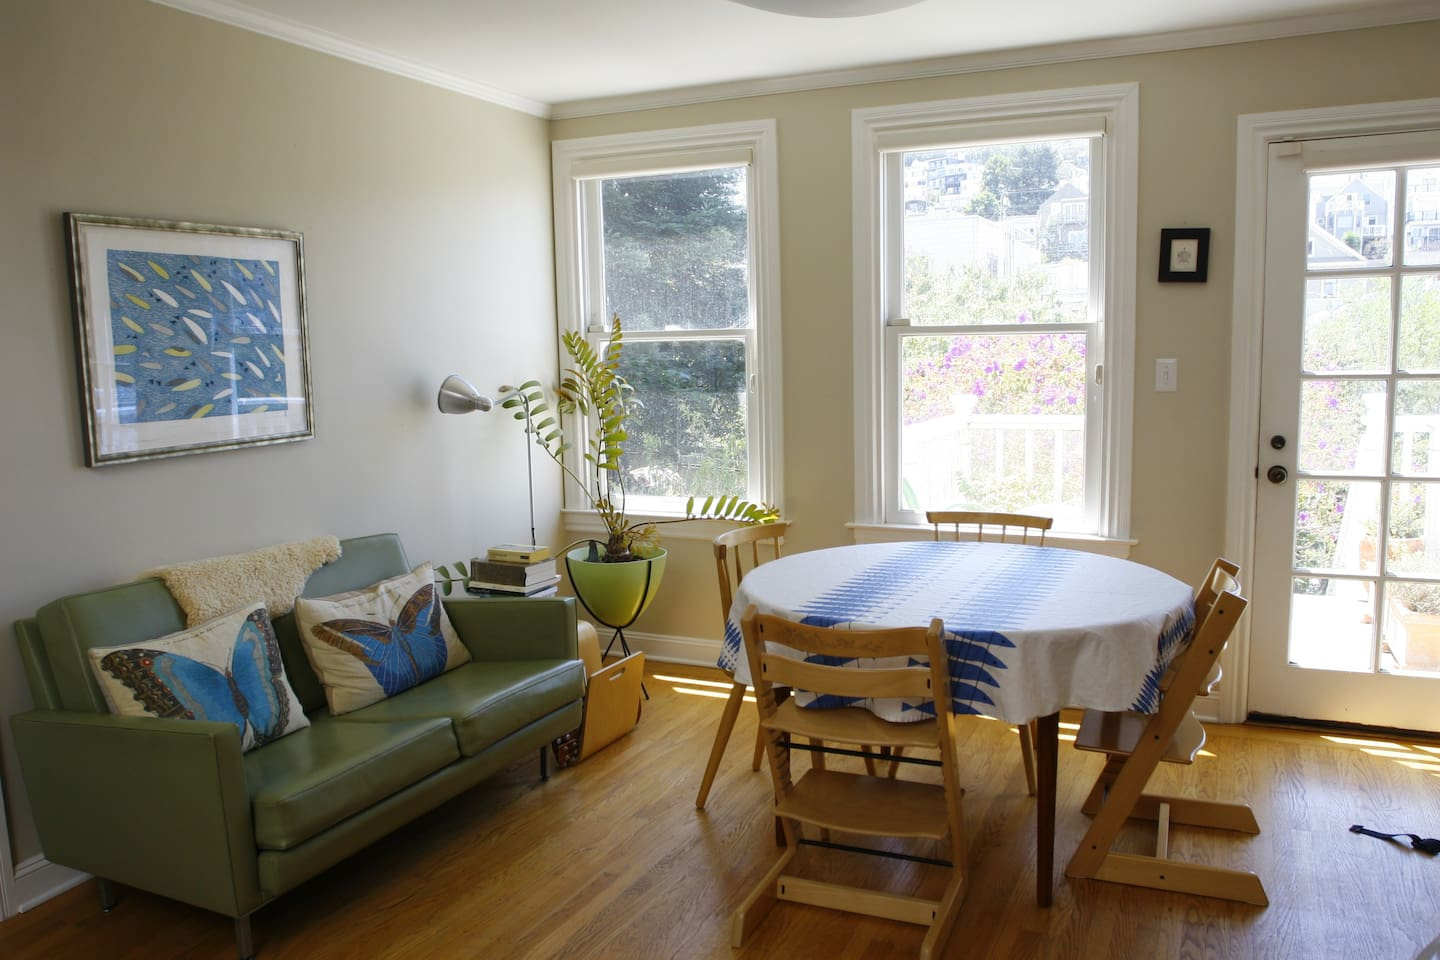 The house features a bright open kitchen and dining area. This is the dining side, with windows to the garden.